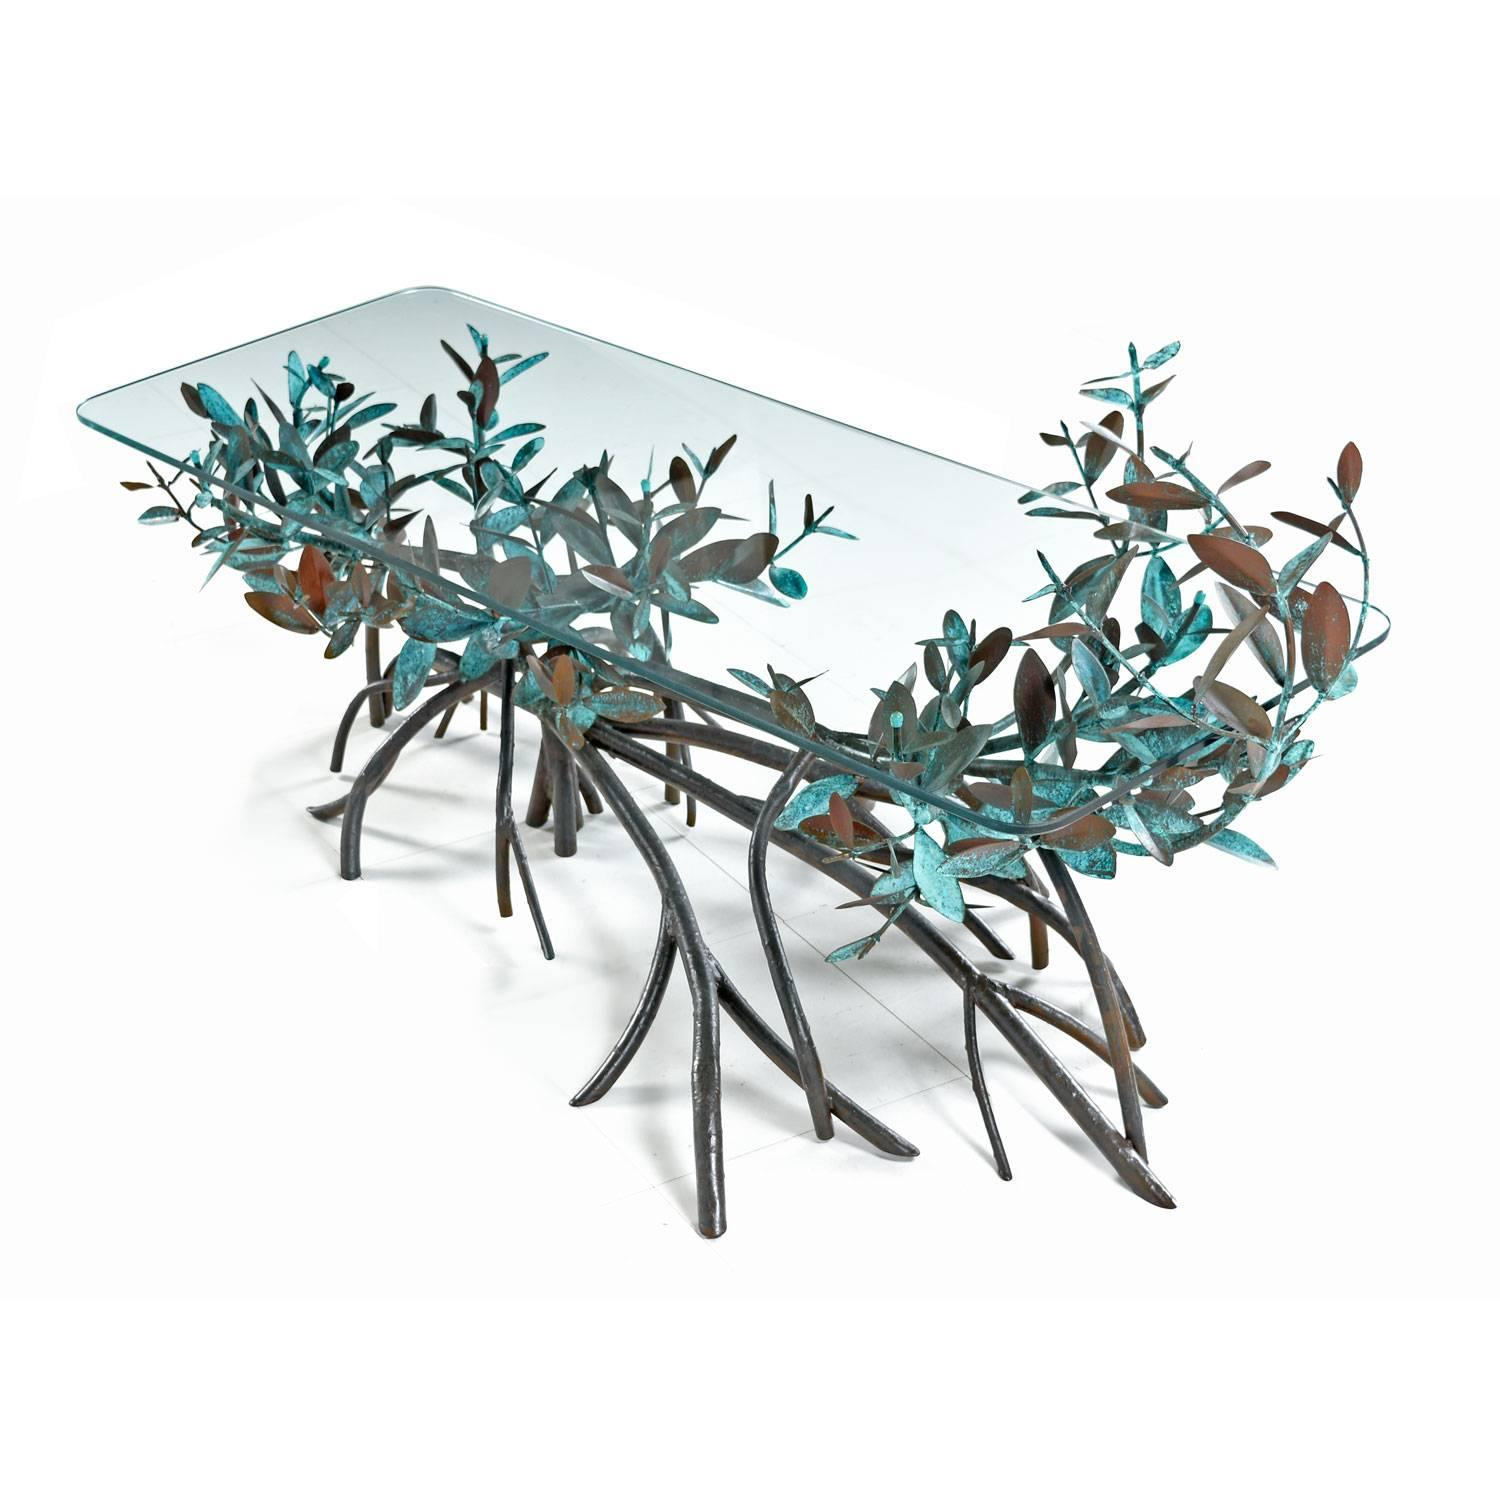 Midcentury Silas Seandel Style Metal Mangrove Tree Leaf Glass Top Coffee  Table At 1stdibs